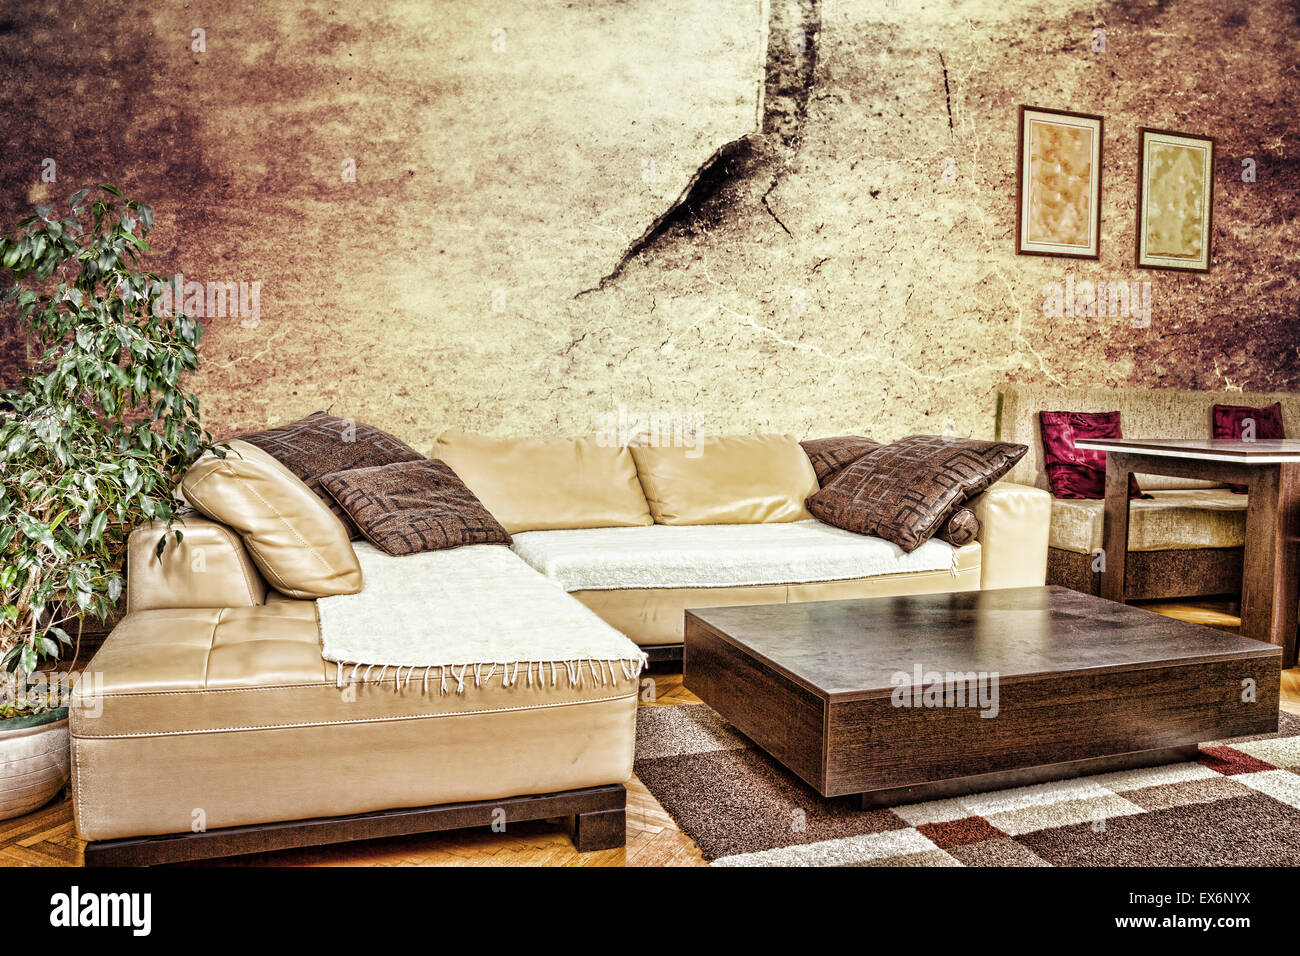 Grunge living room or interior with dirty design with sofa corner grunge living room or interior with dirty design with sofa corner with cushions and low table concept of old warn wall in hom watchthetrailerfo